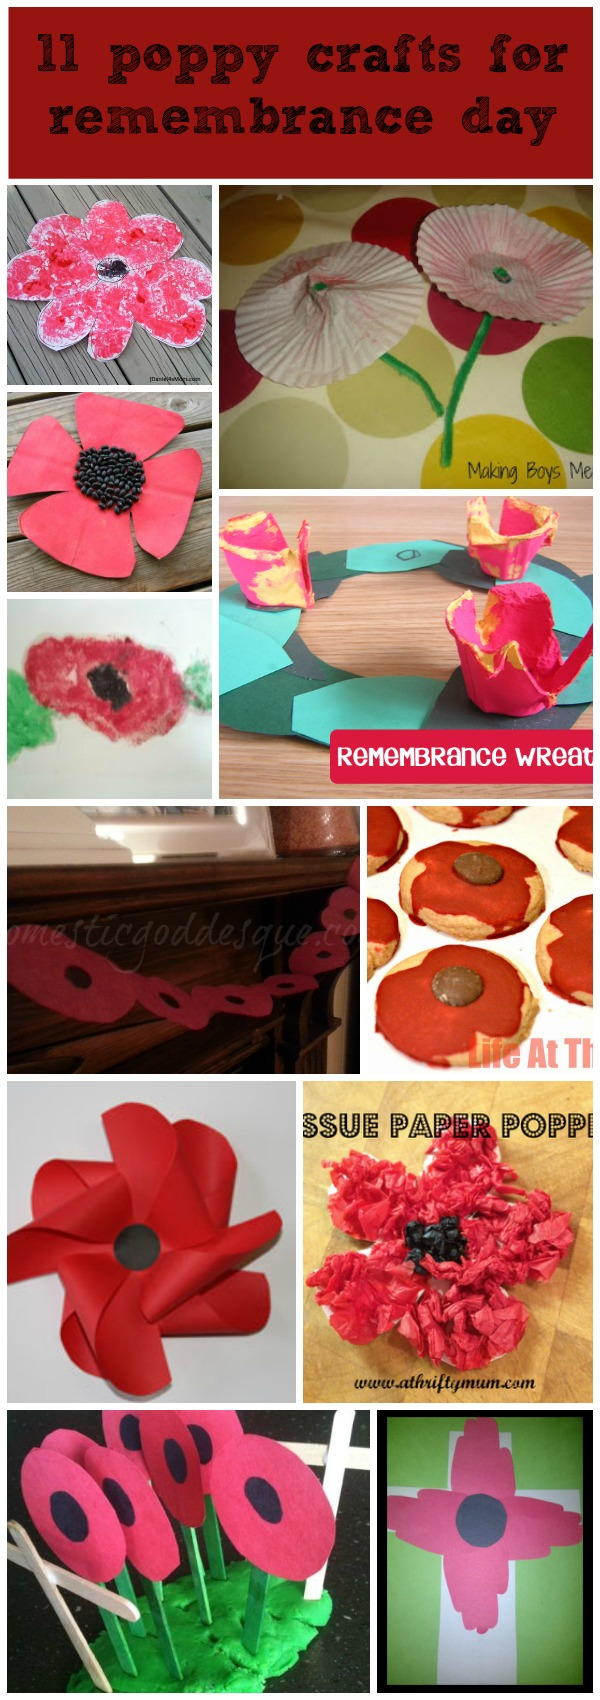 poppy crafts